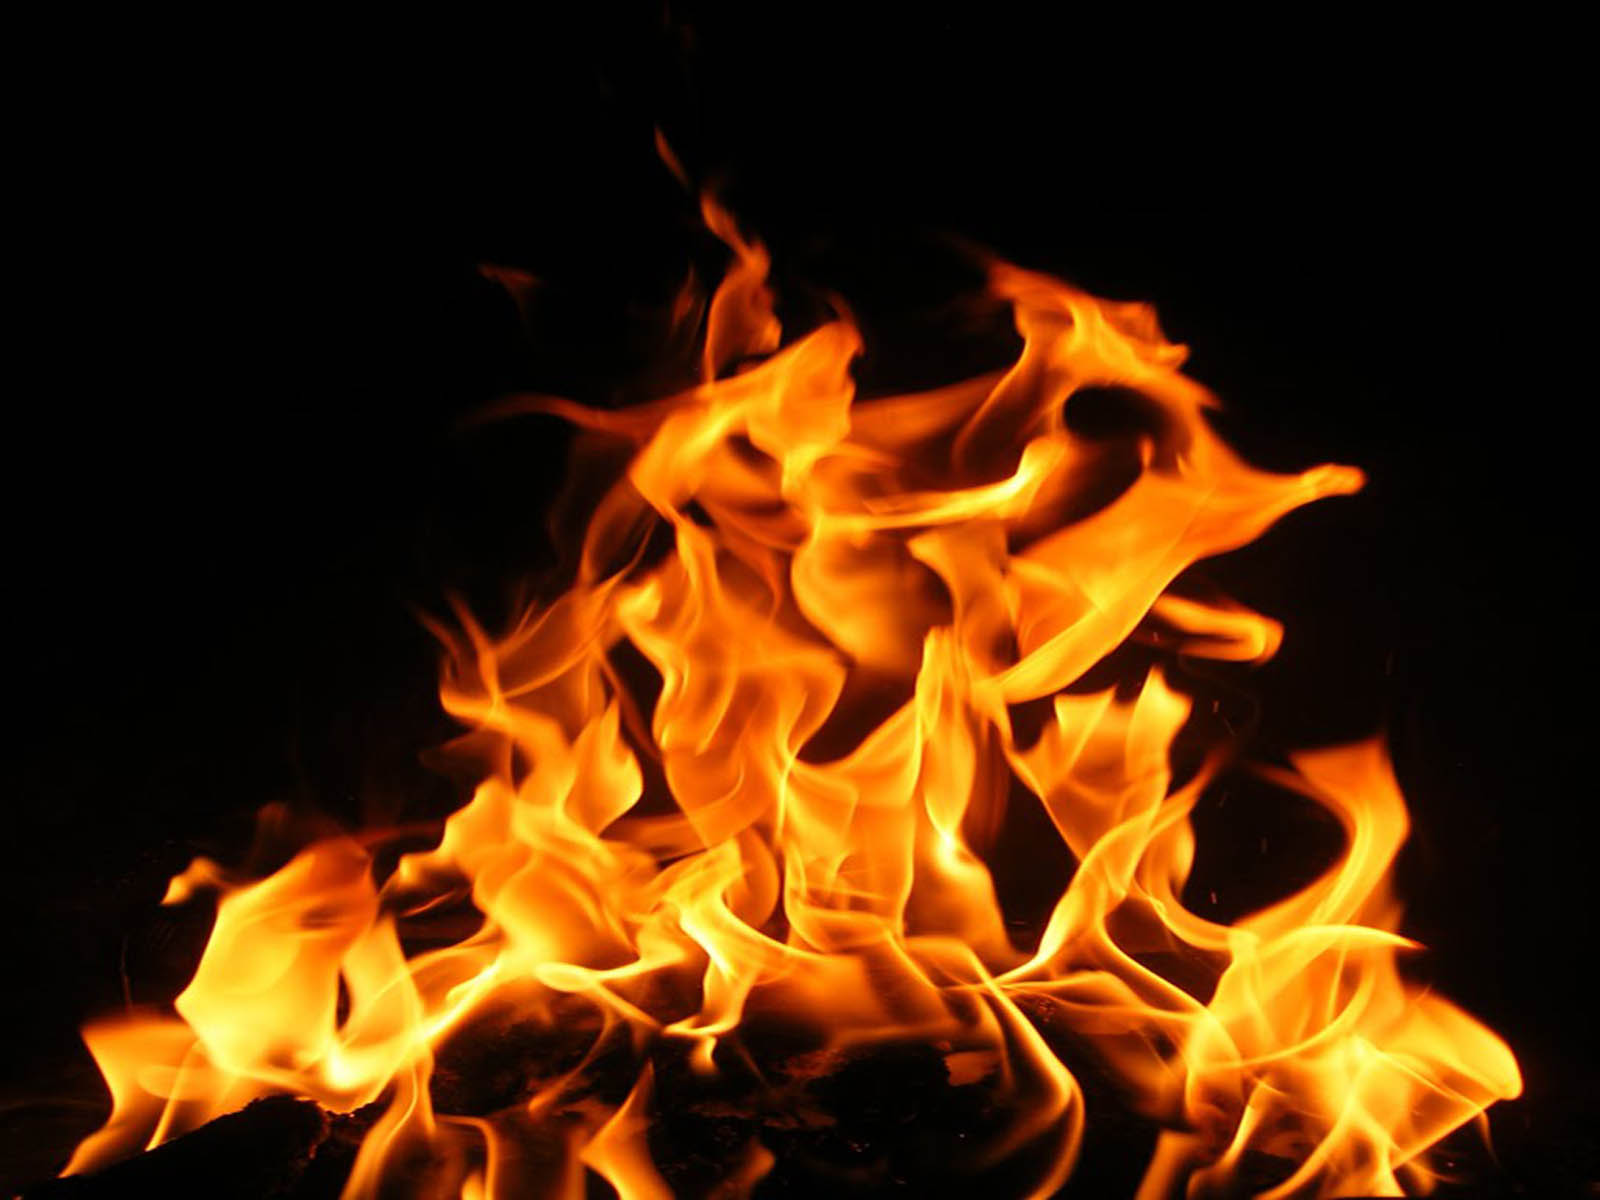 Fire Flames Wallpaper 5574.65 Kb